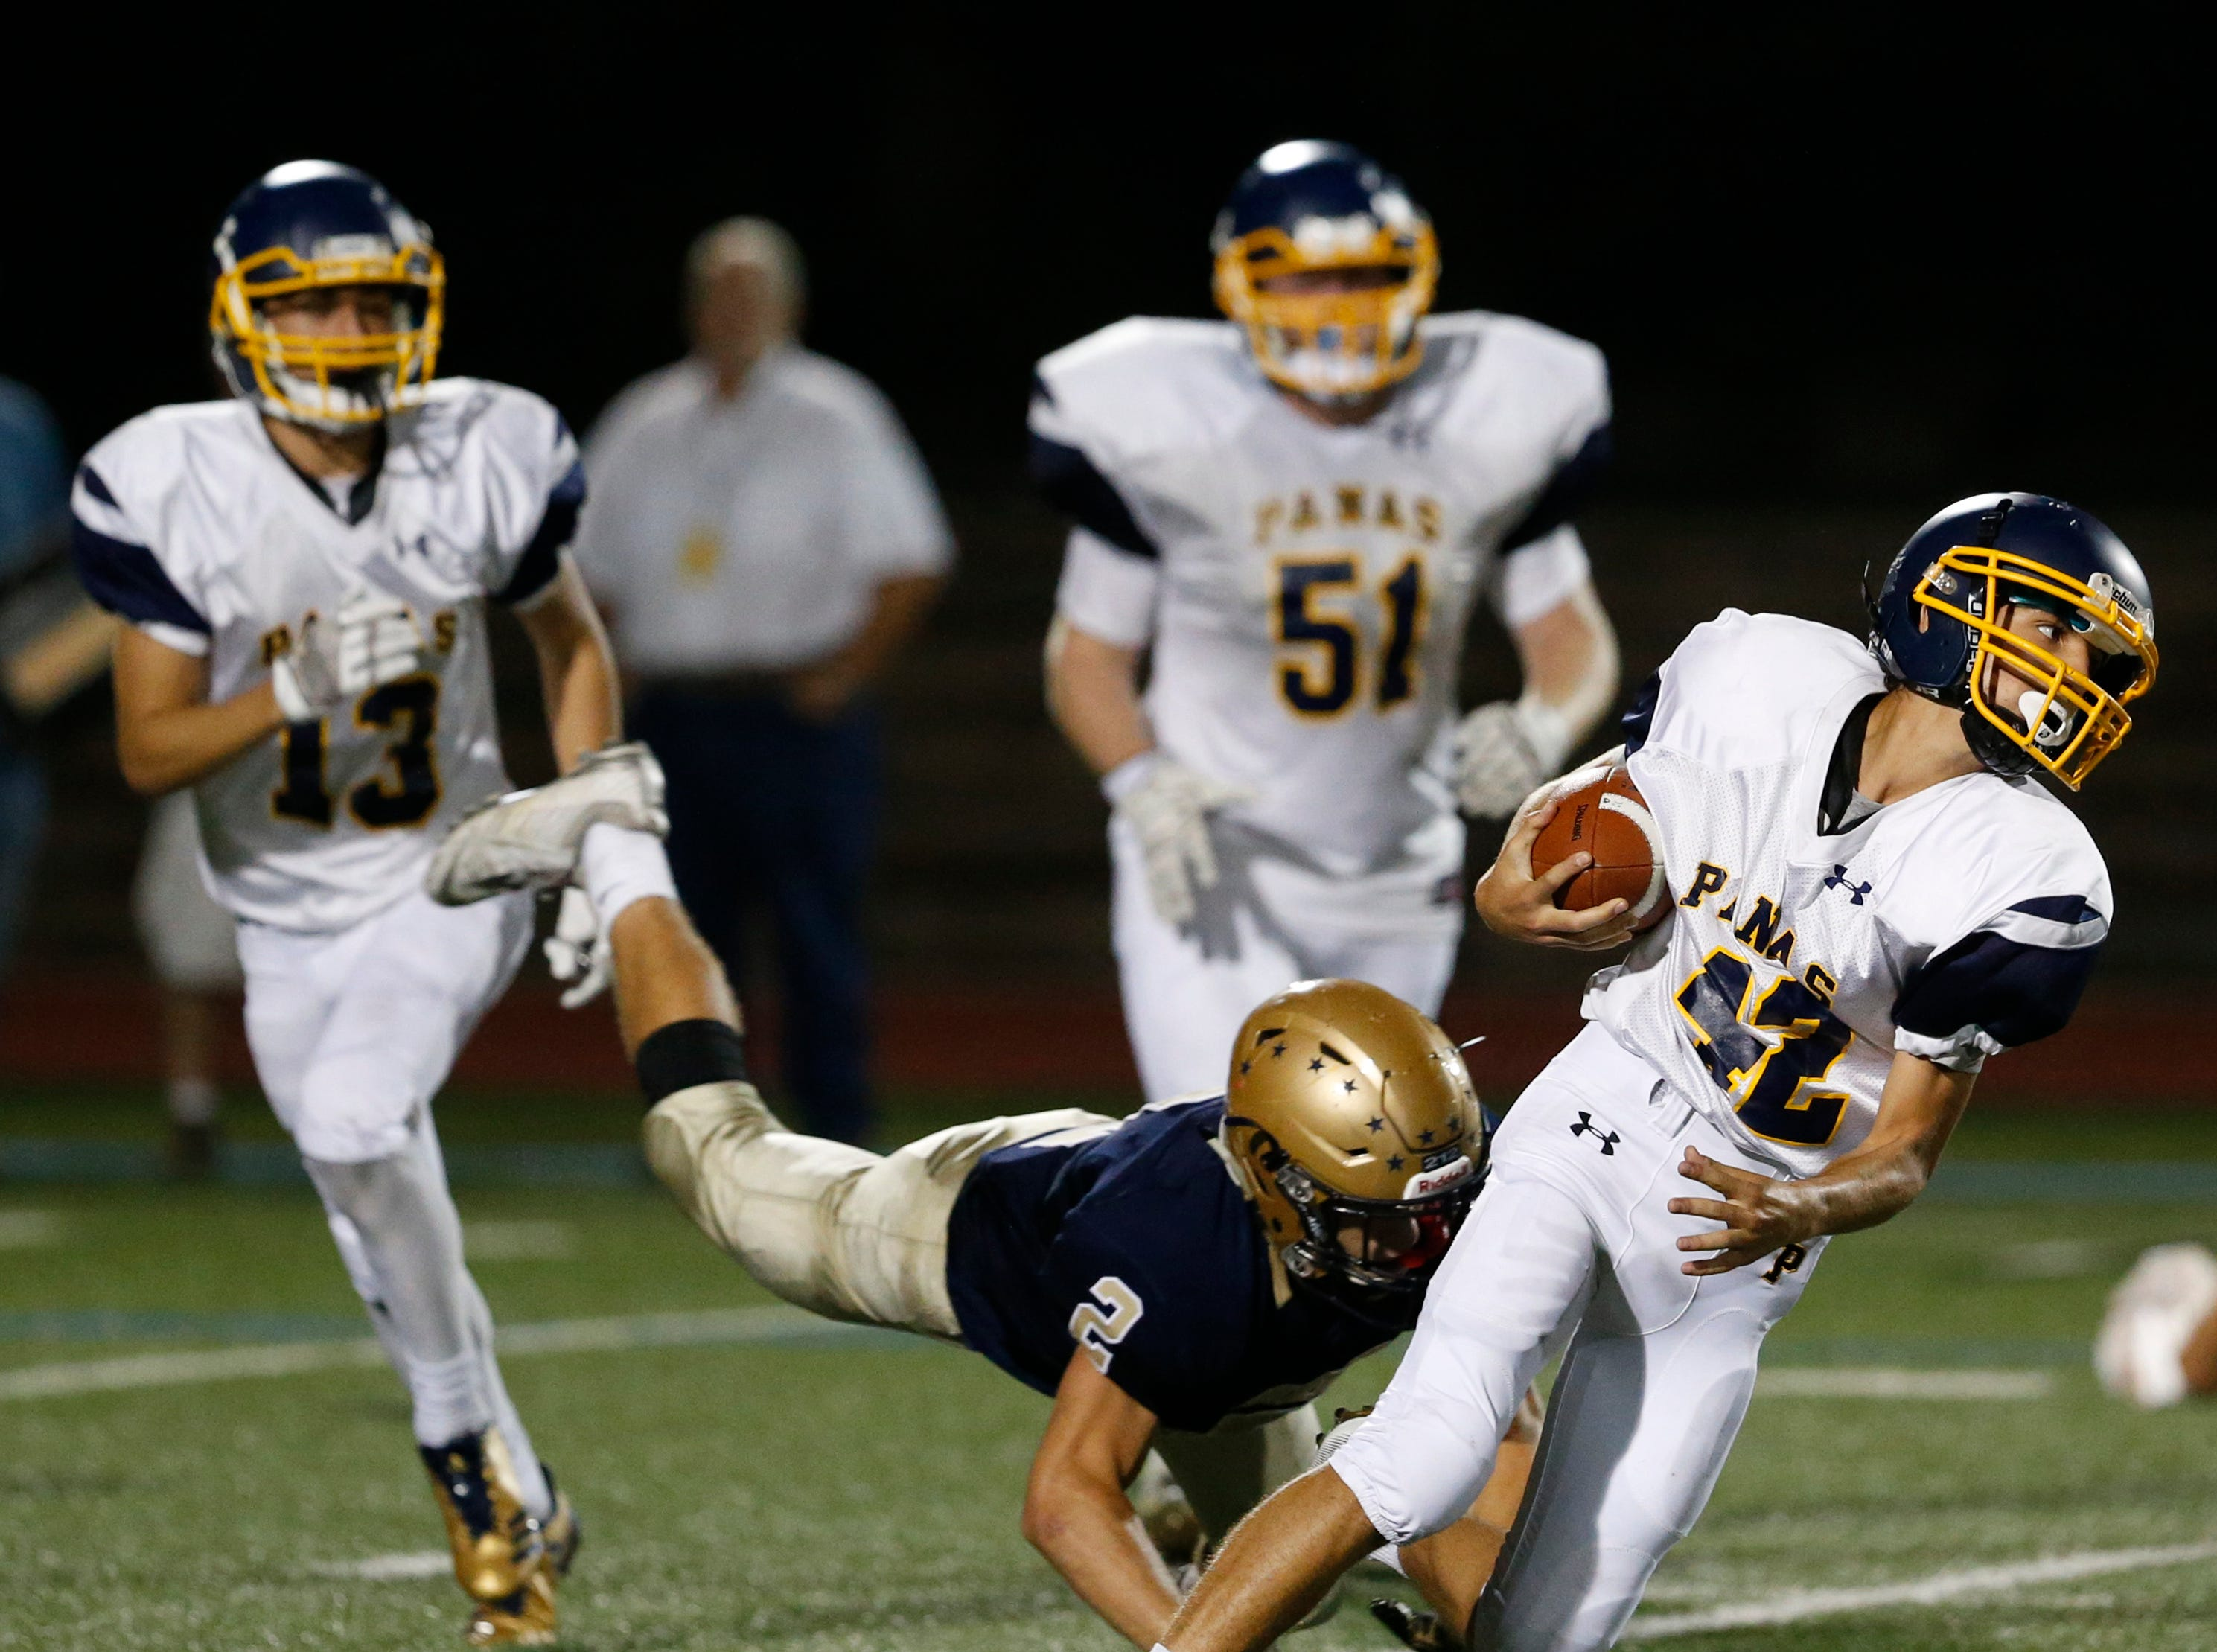 Lourdes' Trevor Arnone dives for and Walter Panas' Derek Pisani during Friday night's game in the Town of Poughkeepsie on Sept. 21, 2018.